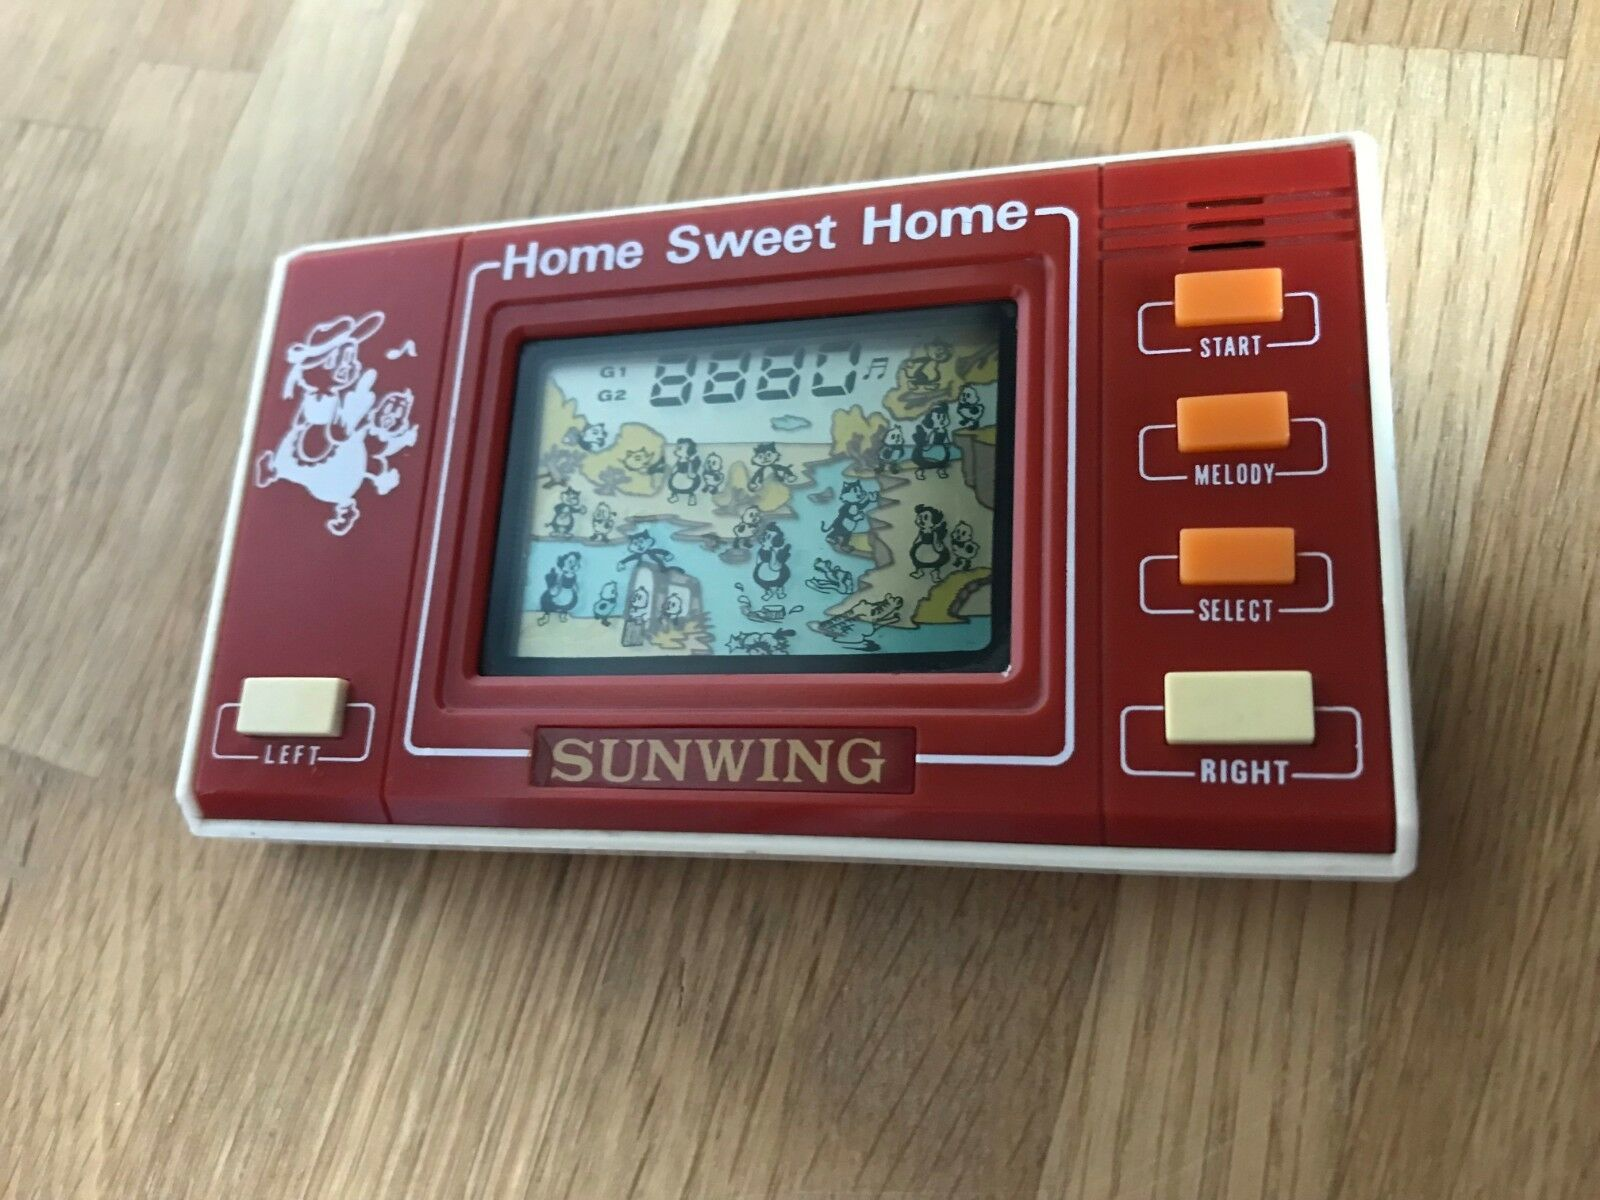 Rare Sunwing Home Sweet Home 1980's Vintage LCD Handheld Electronic Game in VGC.